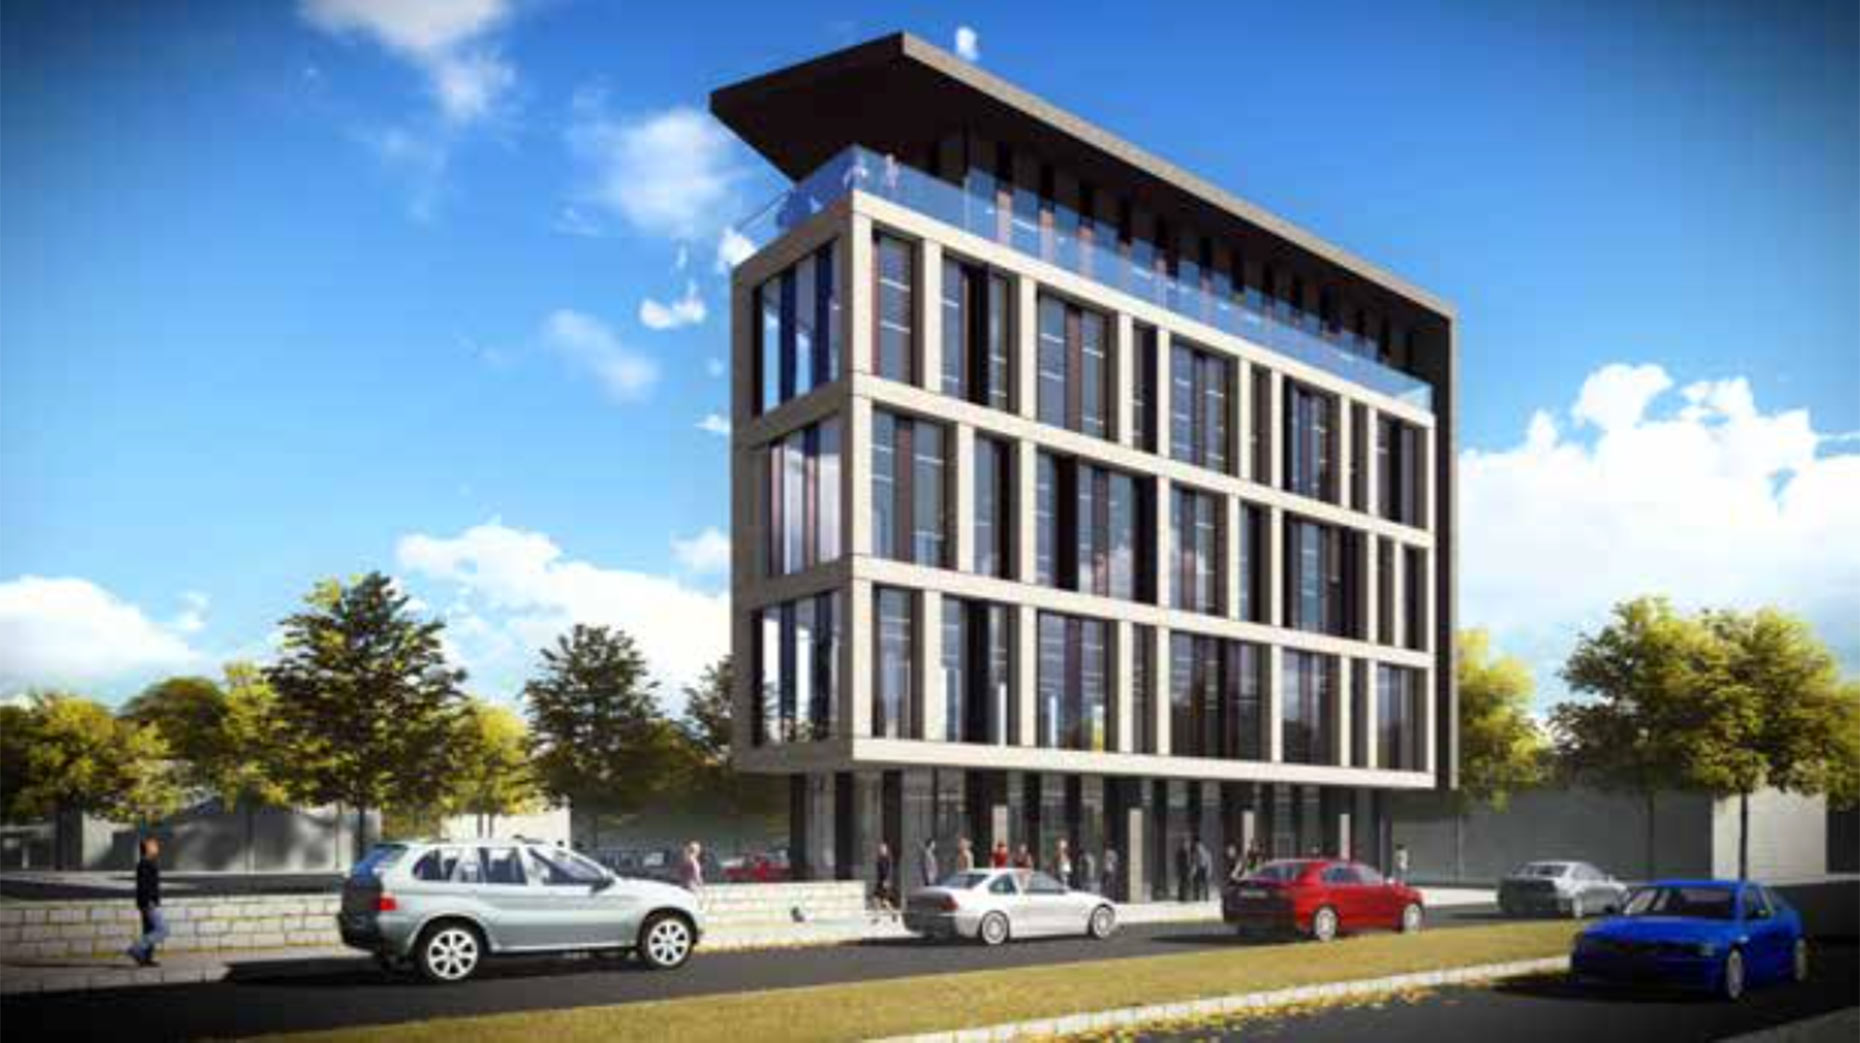 Proposed plot 1 offices. Artist impression: CPMG Architects Limited